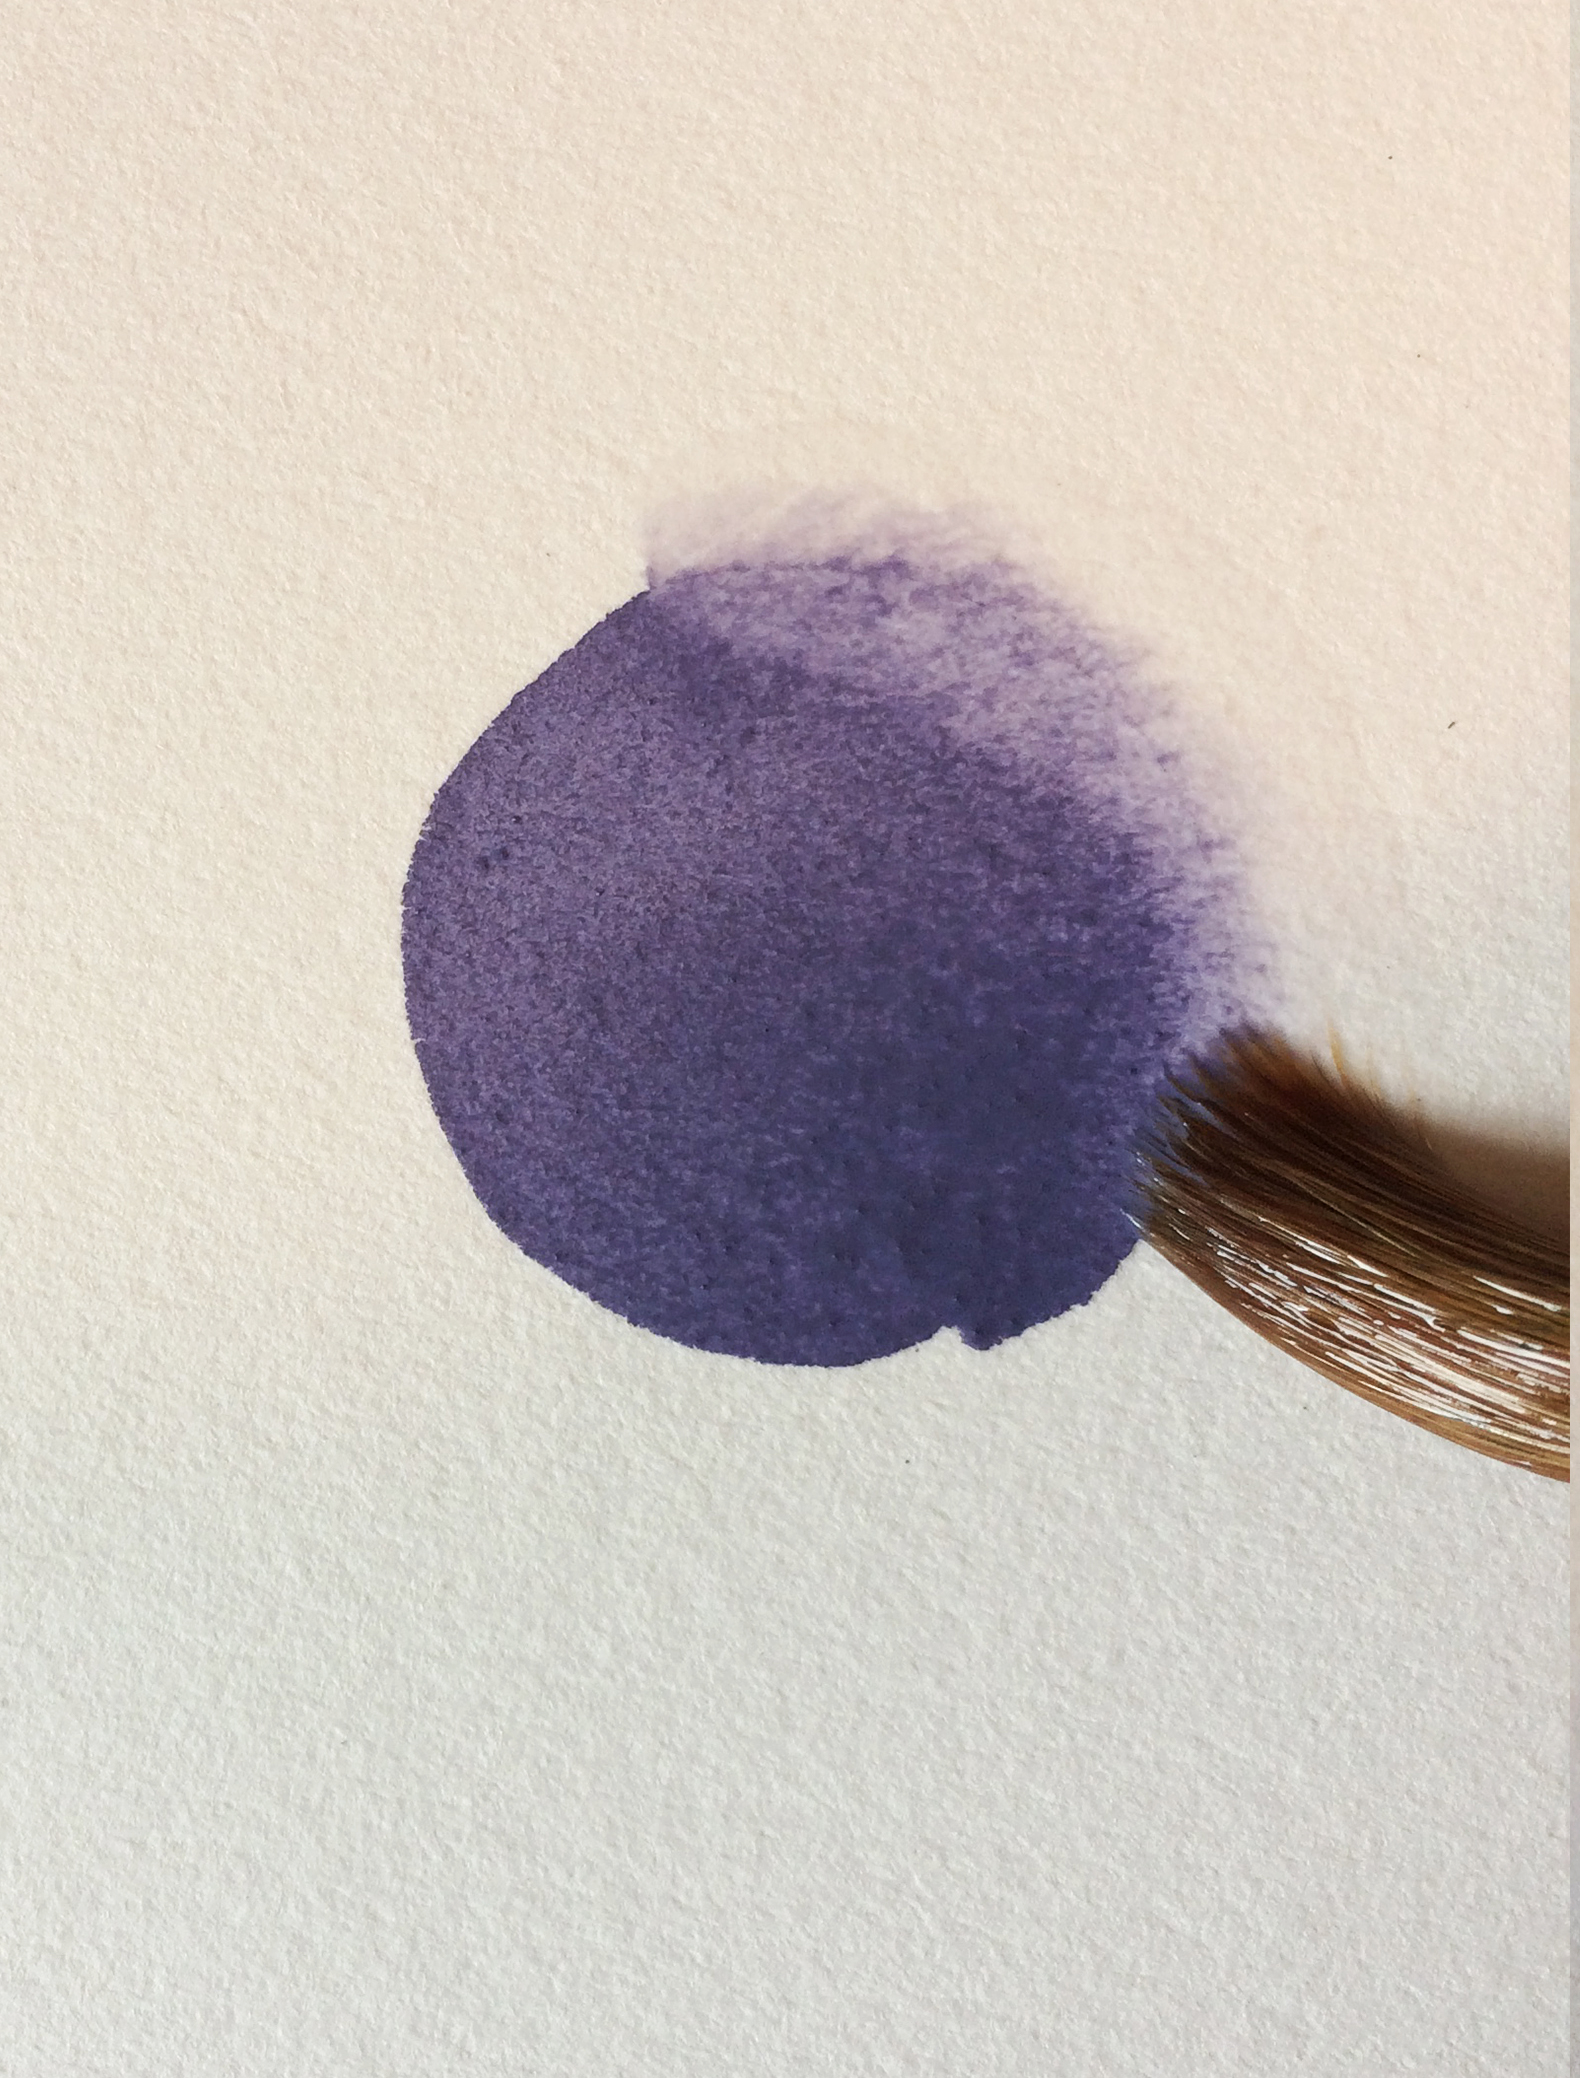 I painted the dark purple shape directly on the paper, and used my clear brush to fade the edge into the paper.